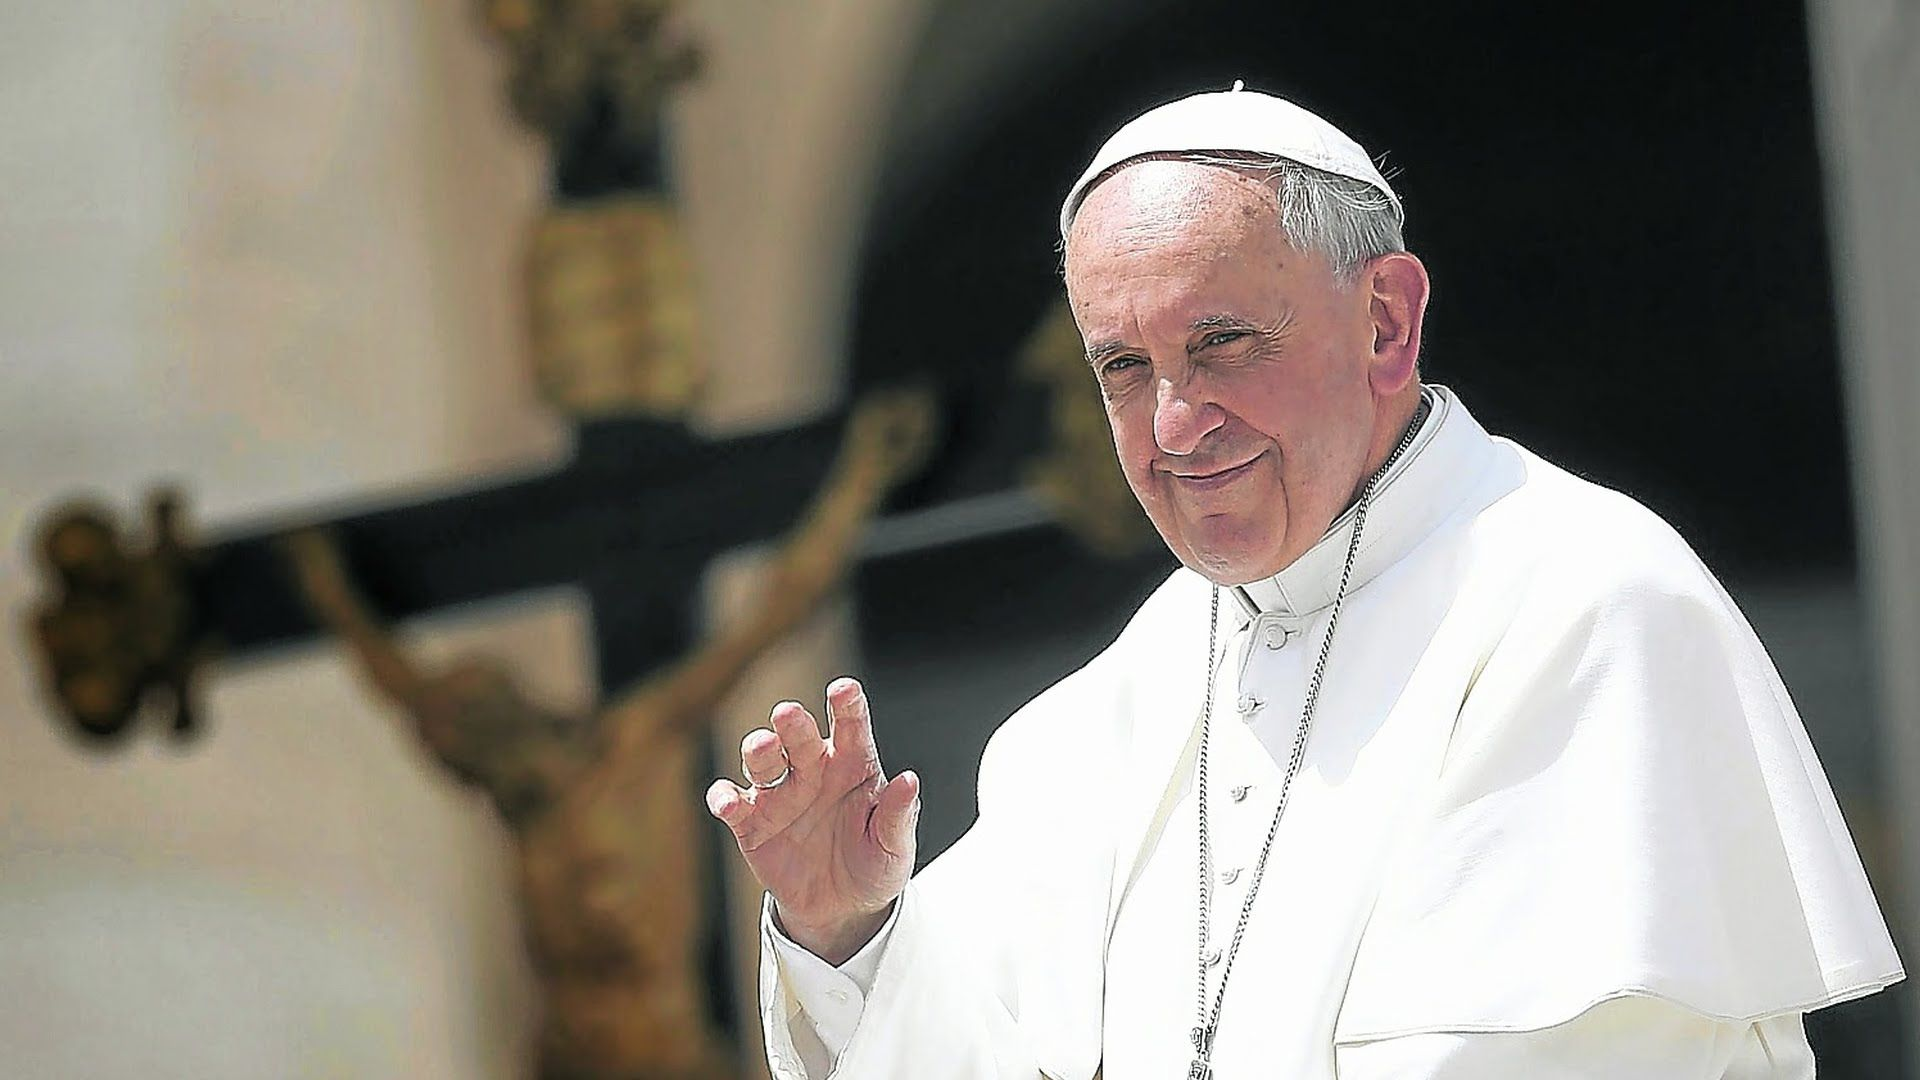 Pope Francis Wallpapers   Top Pope Francis Backgrounds 1920x1080